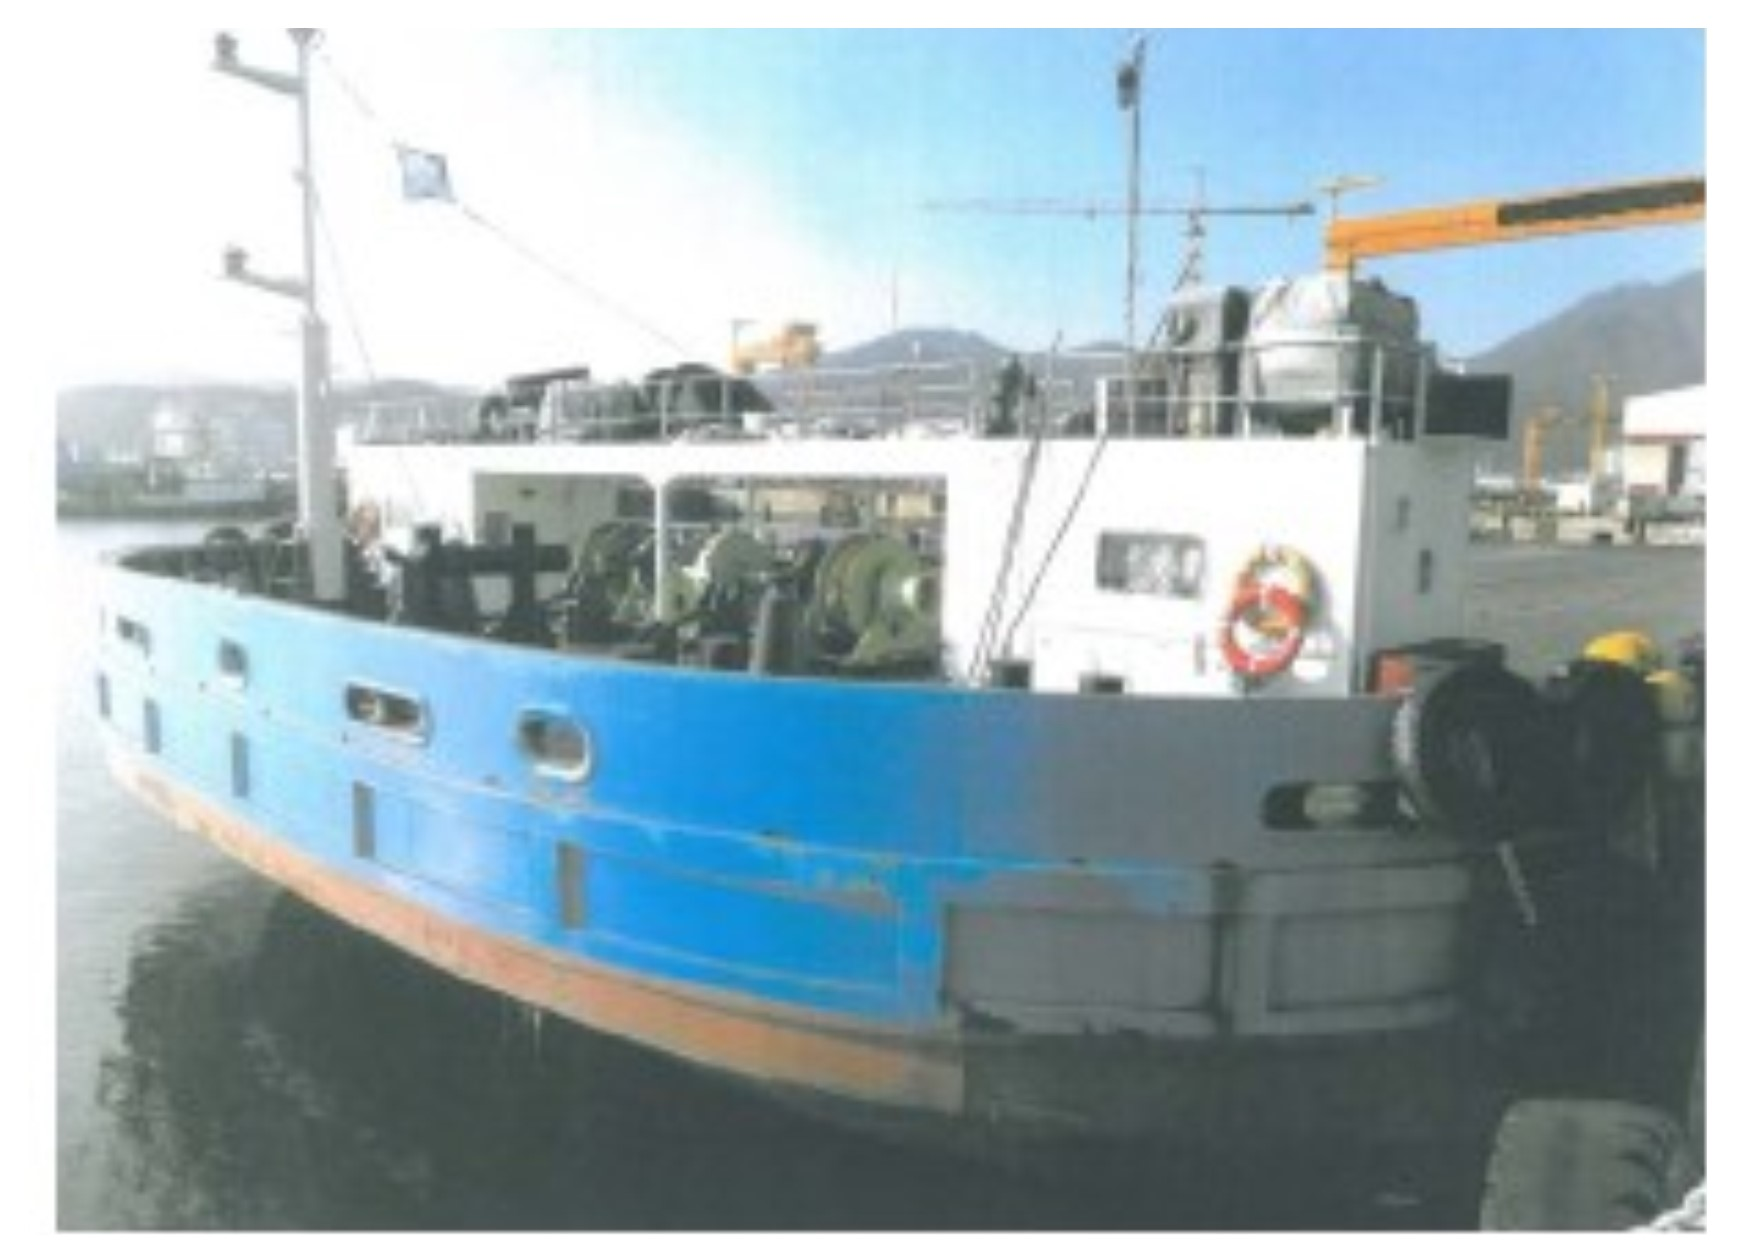 Flat deck barge - Welcome to Workboatsales com